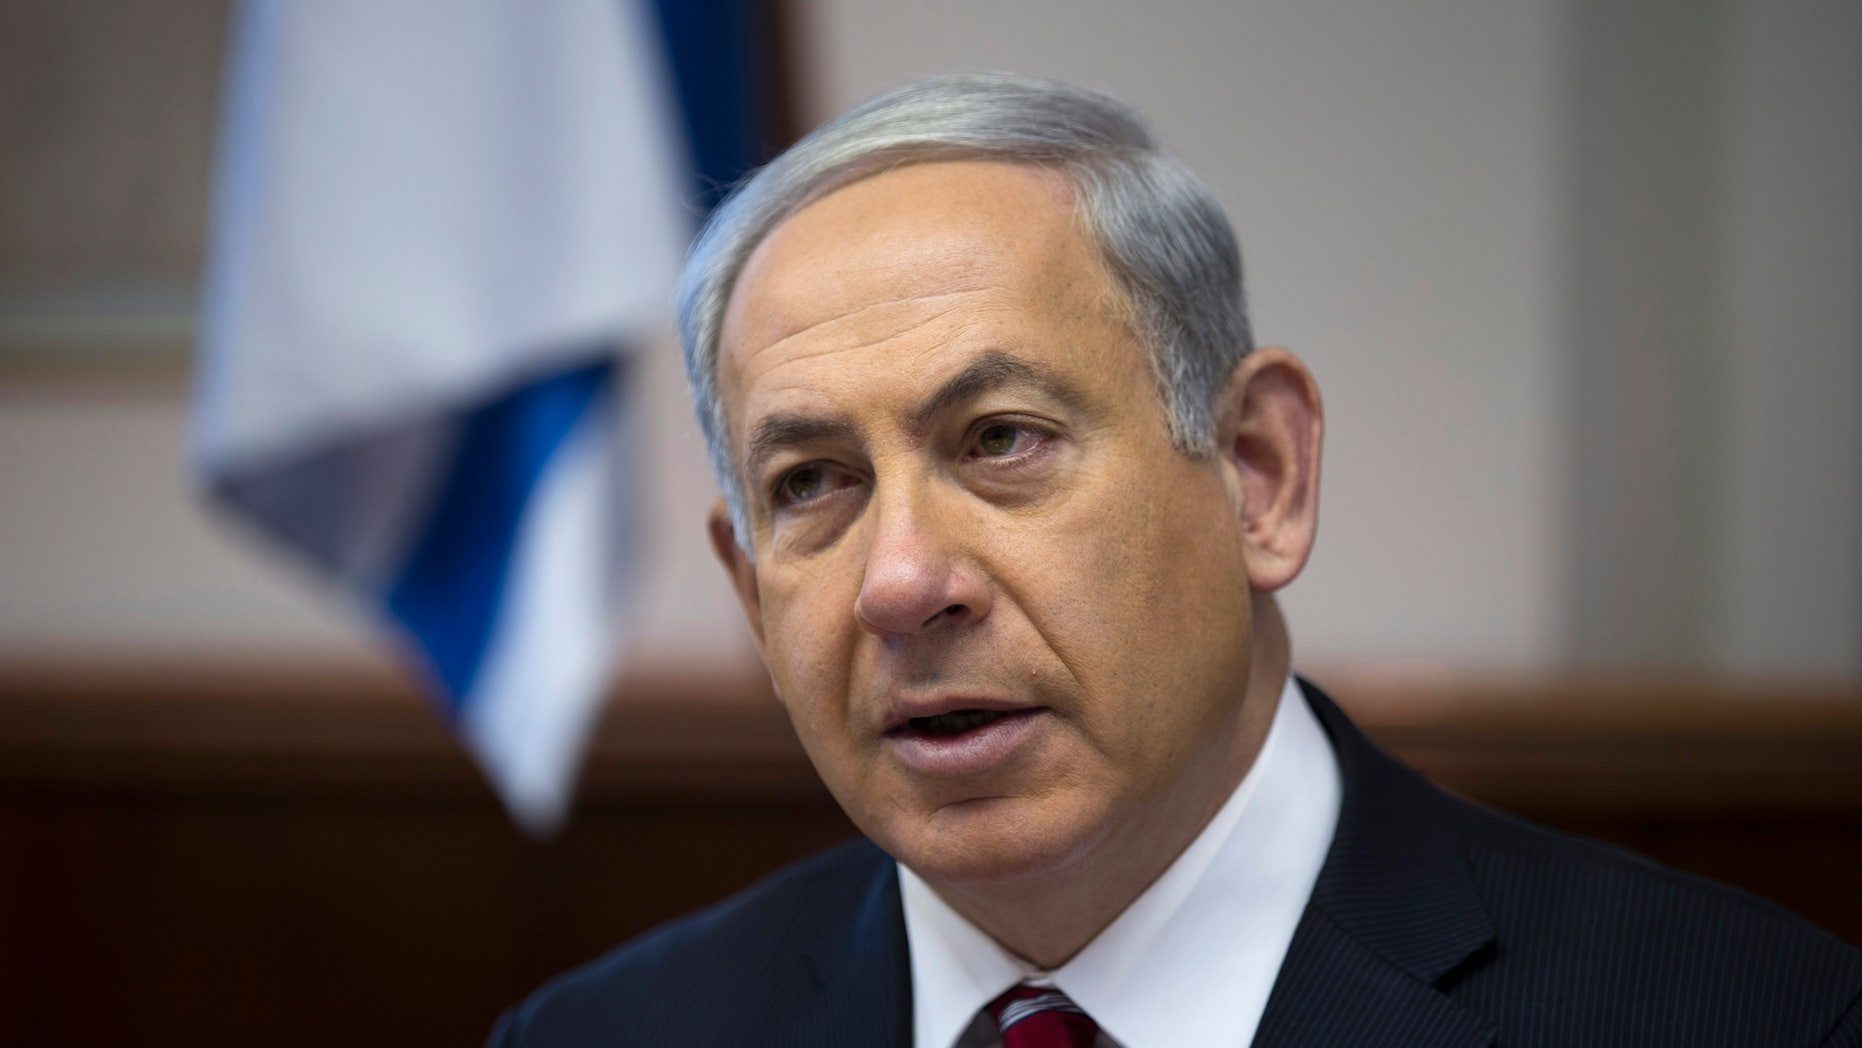 Israel's Prime Minister Benjamin Netanyahu attends the weekly cabinet meeting in Jerusalem on Sunday, Jan. 26, 2014. (AP Photos/Ronen Zvulun, Pool)